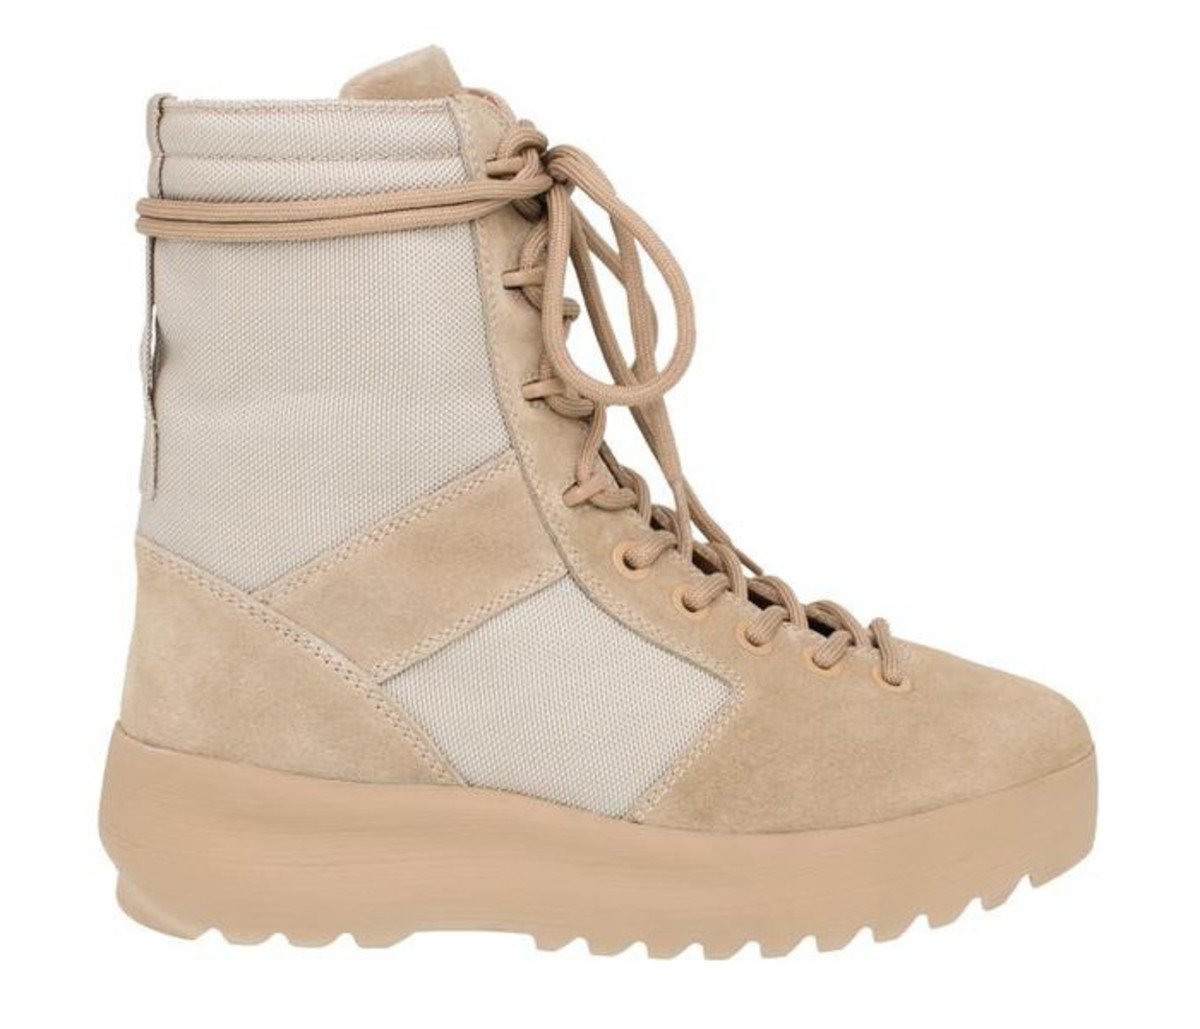 yeezy-season-3-military-boot-02.jpg